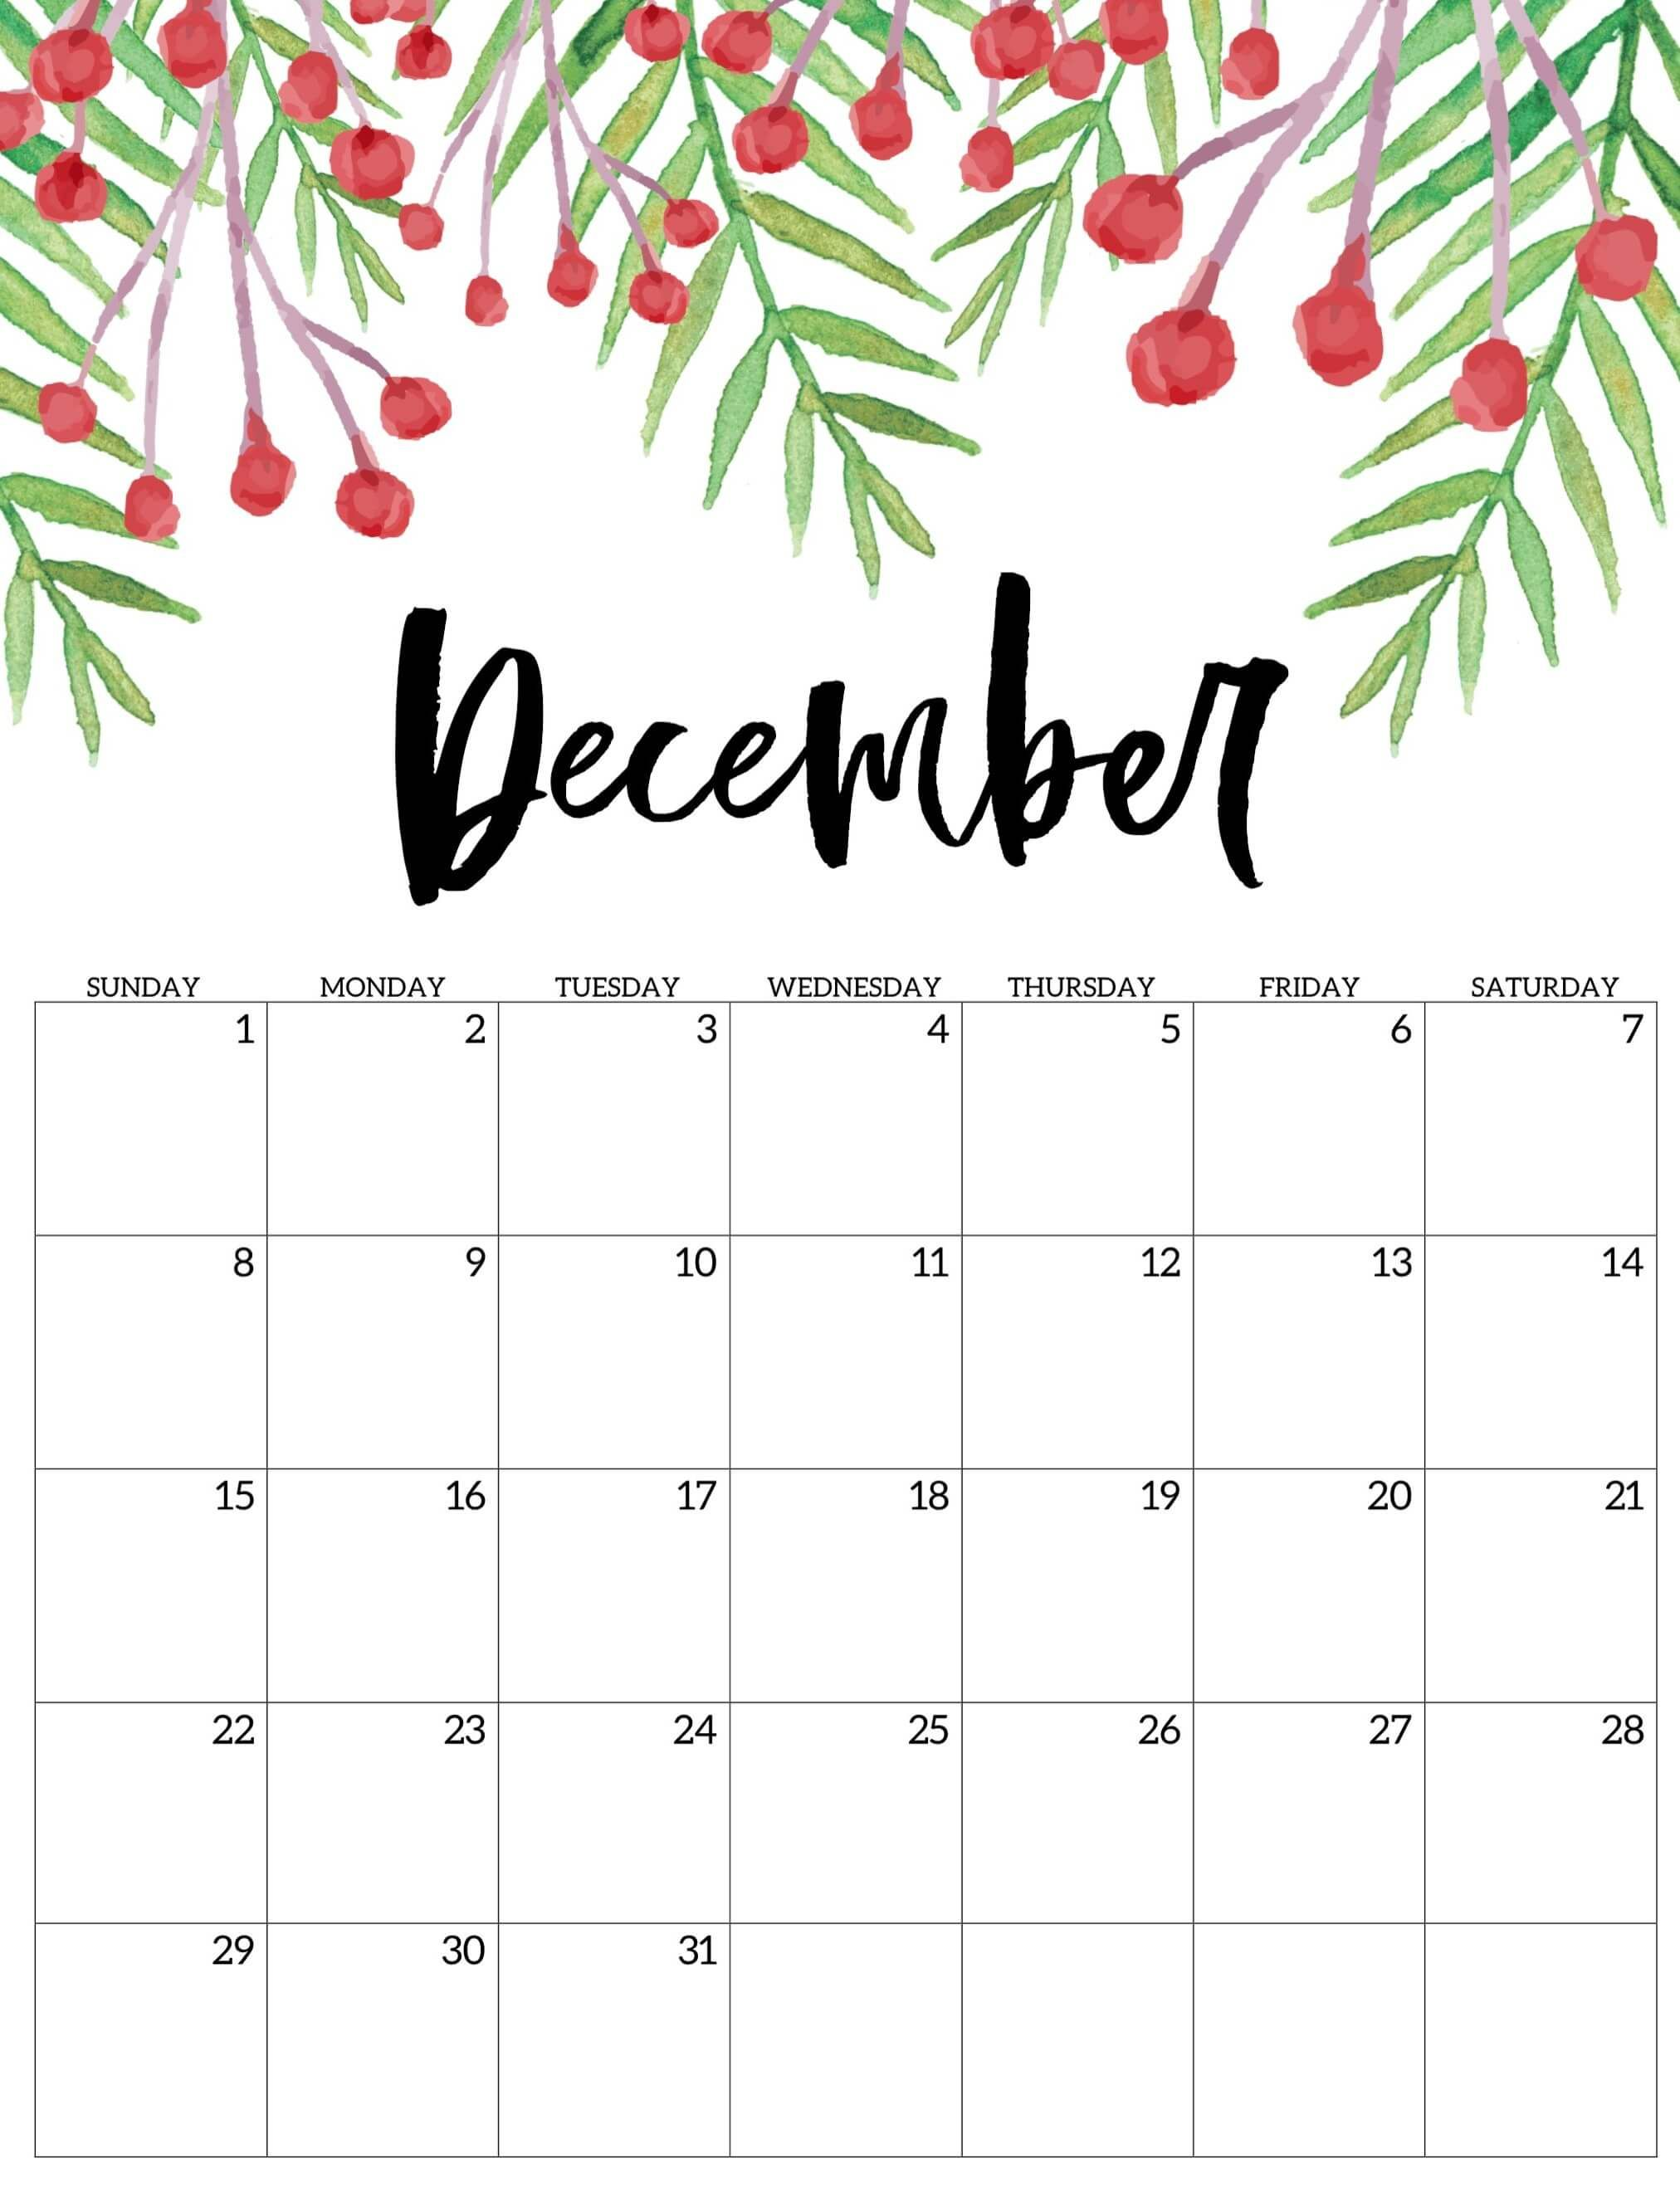 Cute December 2019 Calendar Printable Hd Wallpaper Floral Design